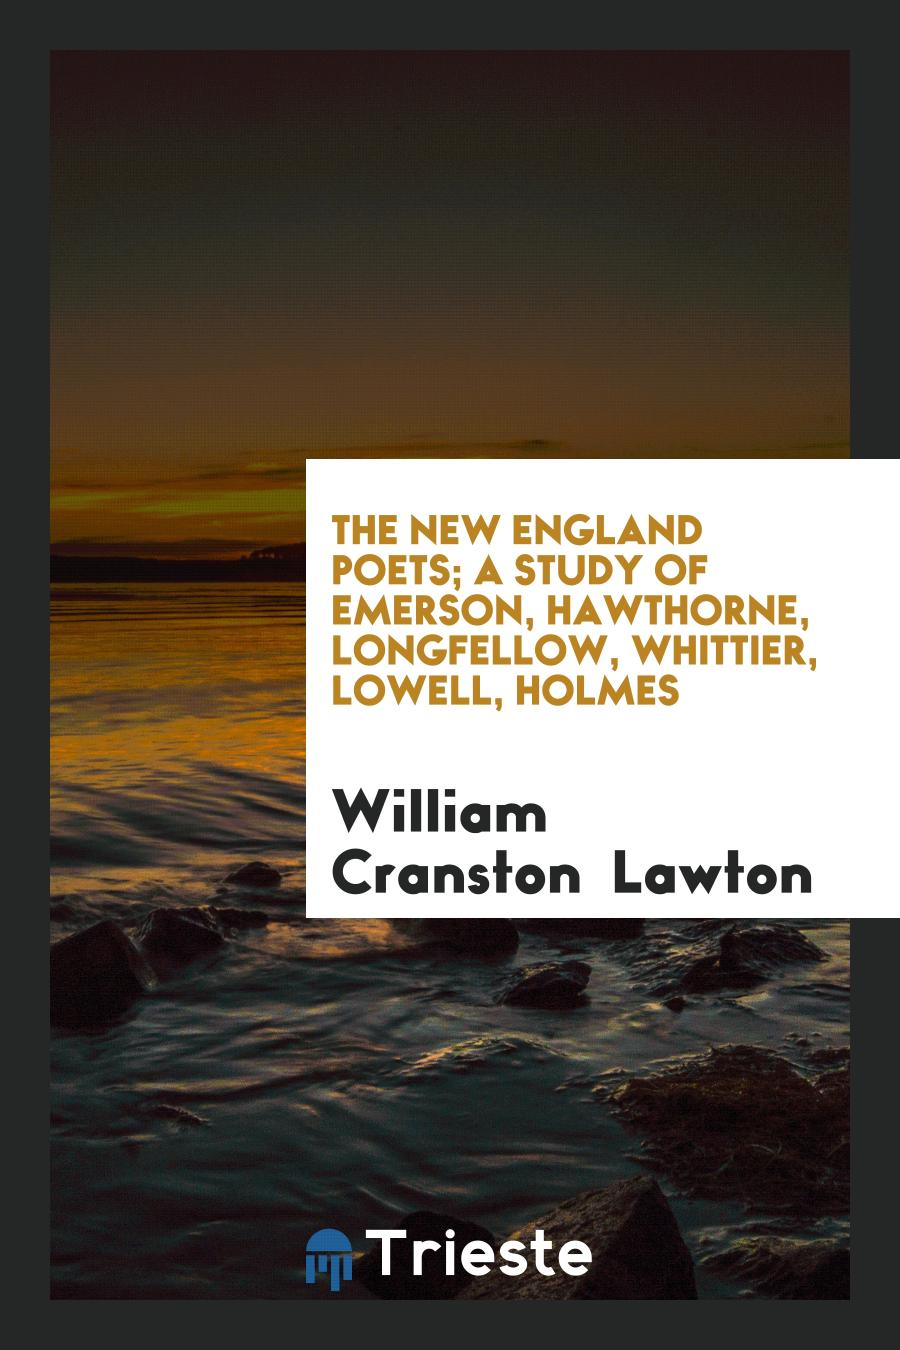 The New England Poets; A Study of Emerson, Hawthorne, Longfellow, Whittier, Lowell, Holmes